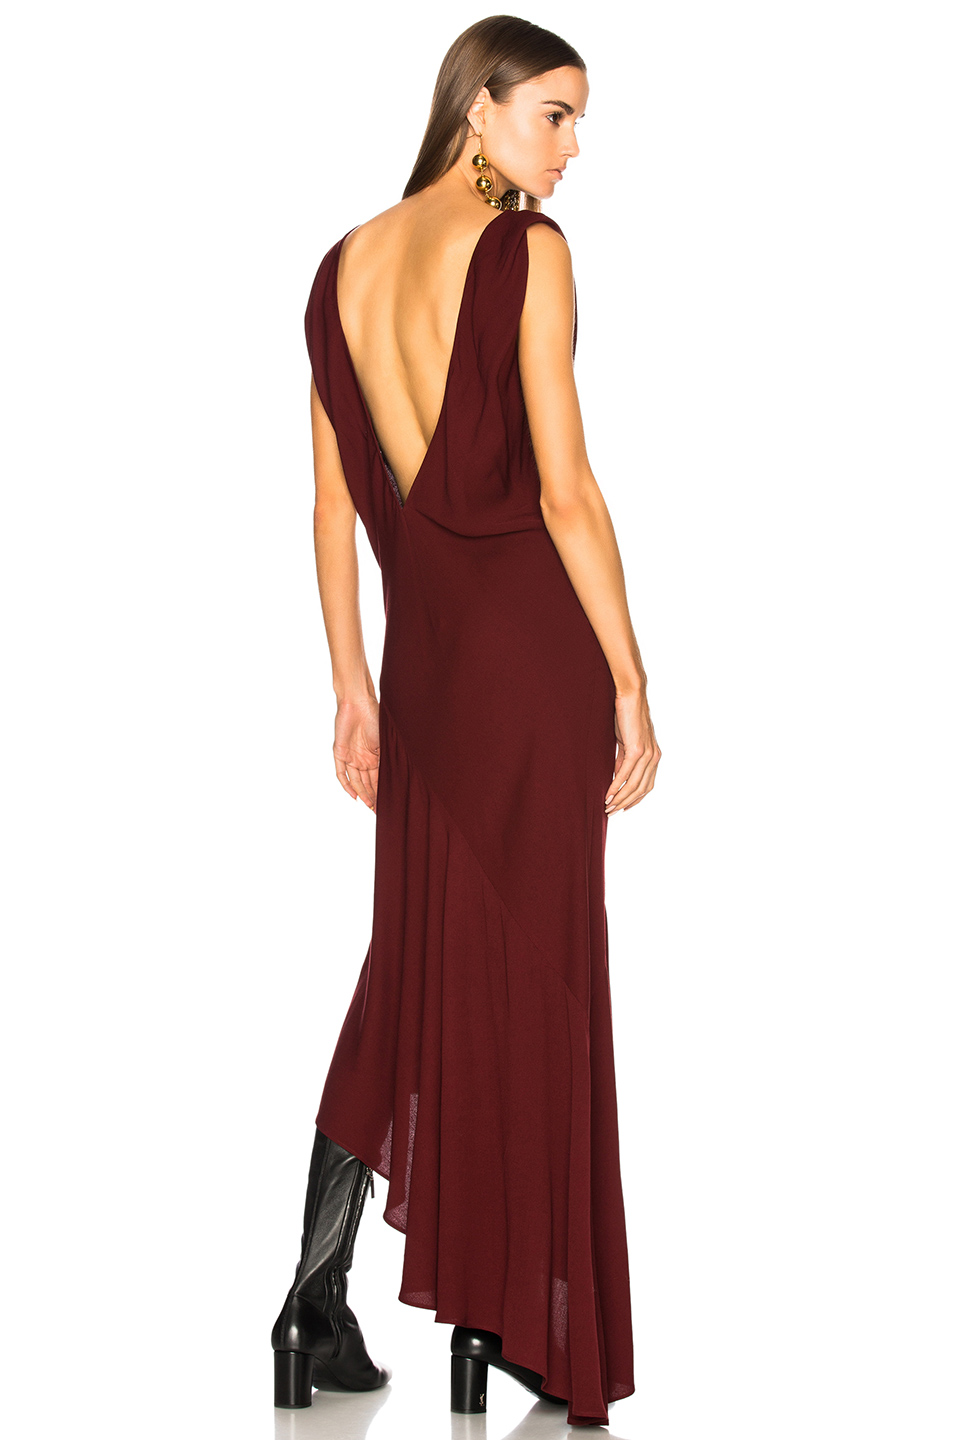 Haider Ackermann V-Neck Sleeveless Dress in Red